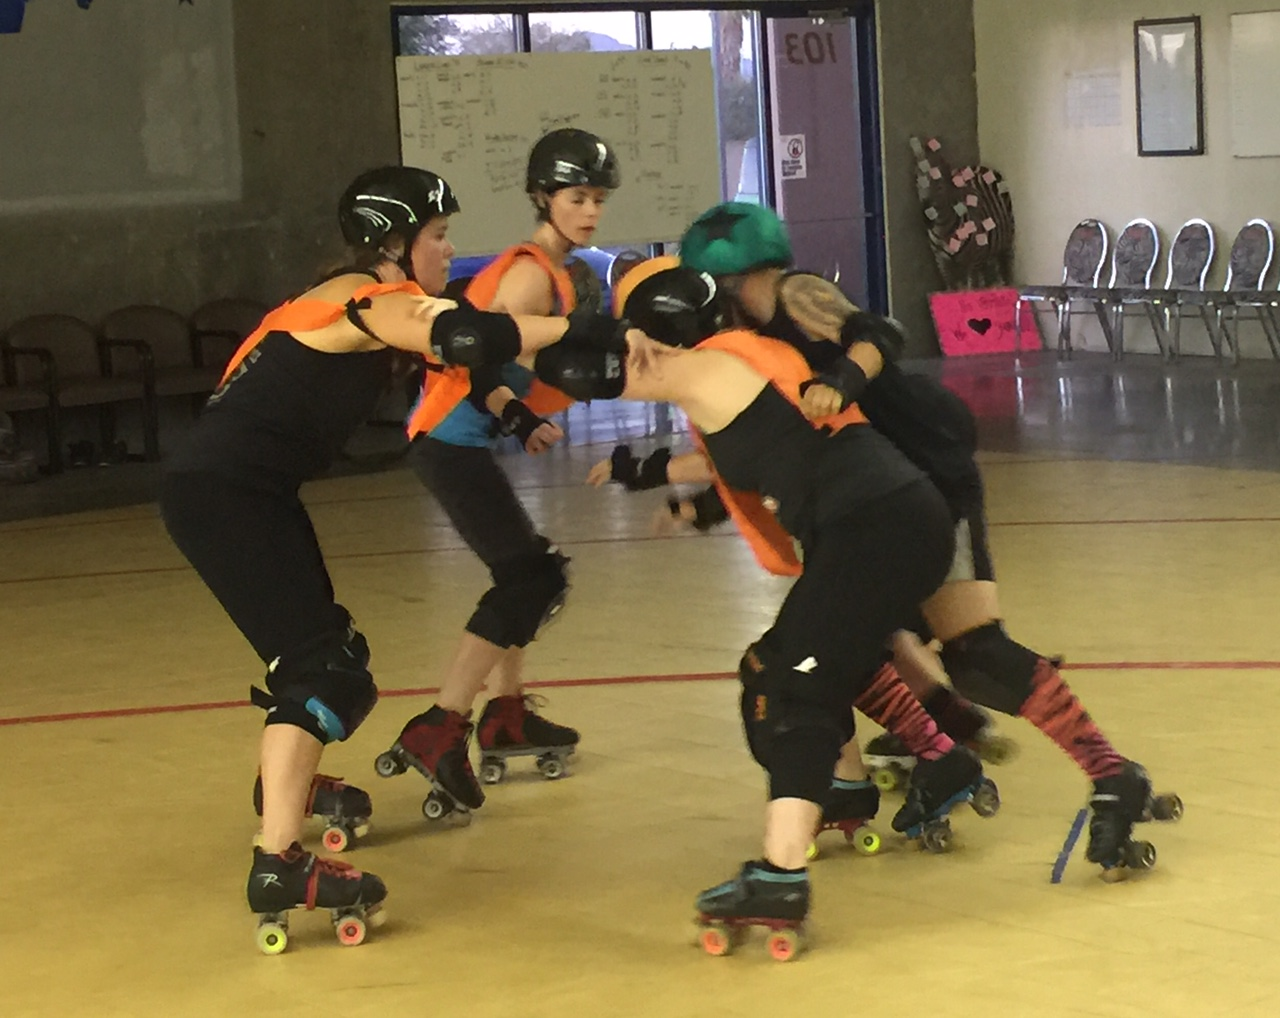 Roller skates las vegas - It May Not Be An Olympic Sport But The Competition Is Just As Fierce